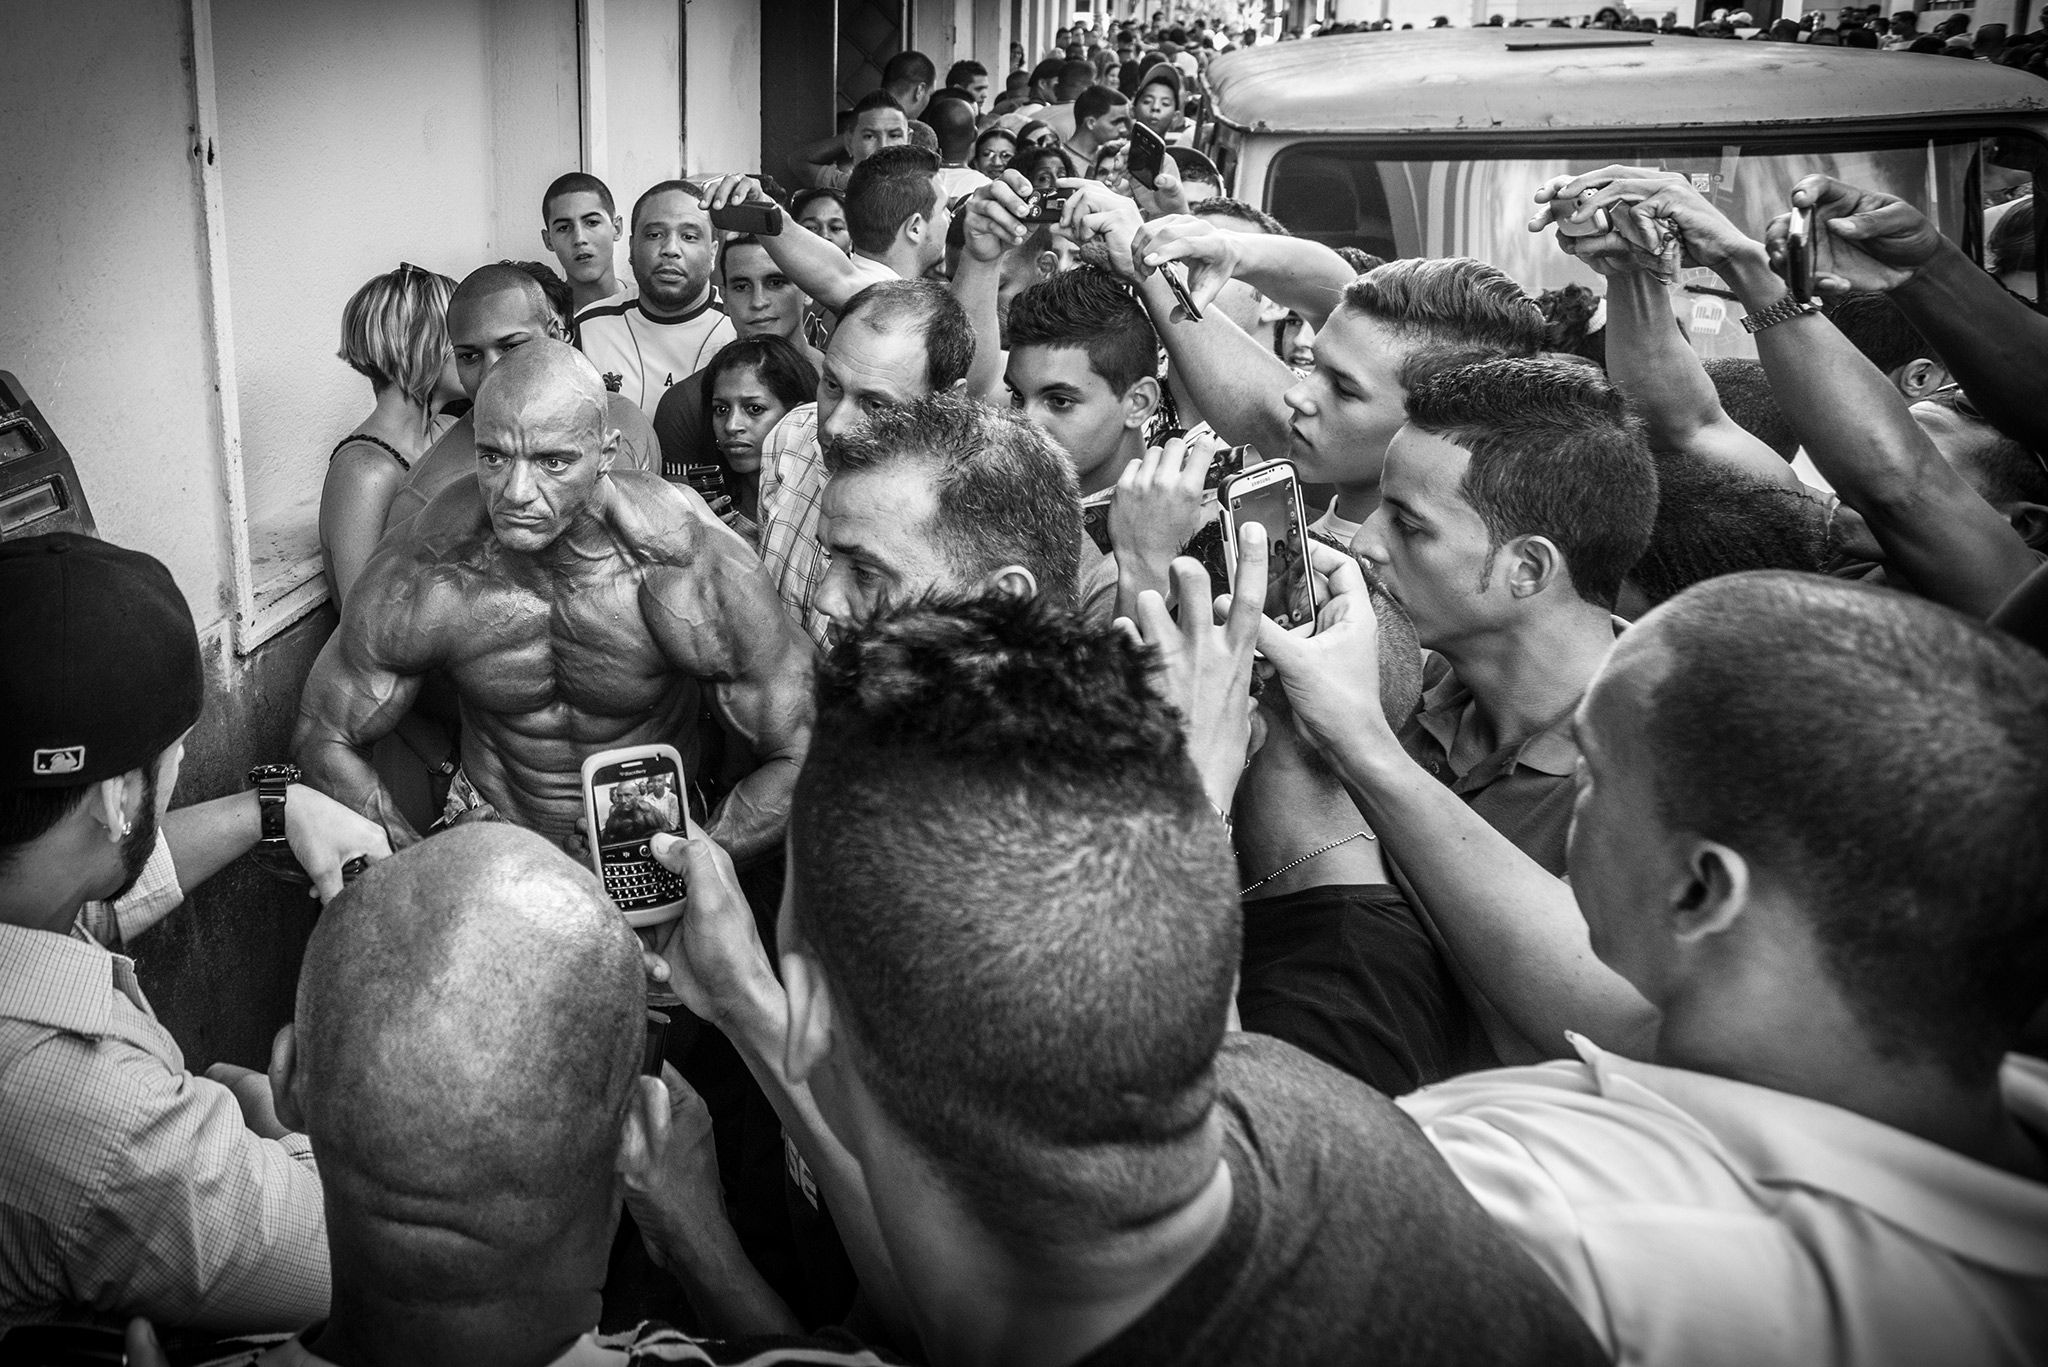 Picture of a crowd surrounding a competitor from the bodybuilding competition, taking pictures with their cell phones while he flexes Photo by Arien Chang via National Geographic PROOF